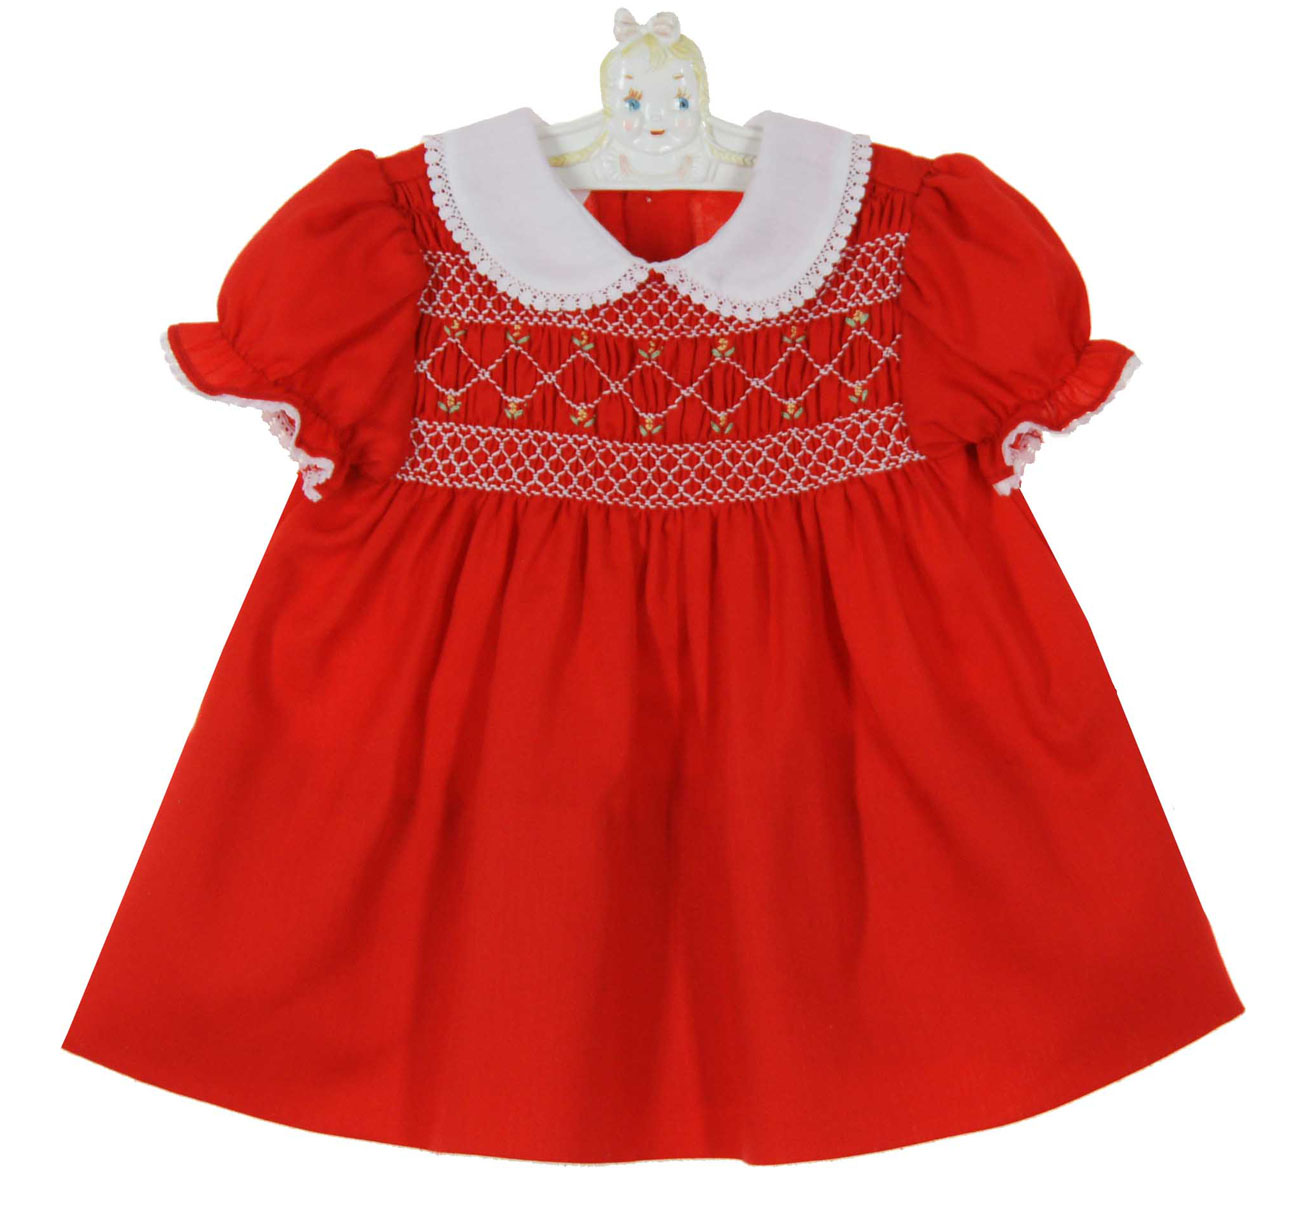 Polly Flinders Red Smocked Dress With White Lace Trimmed